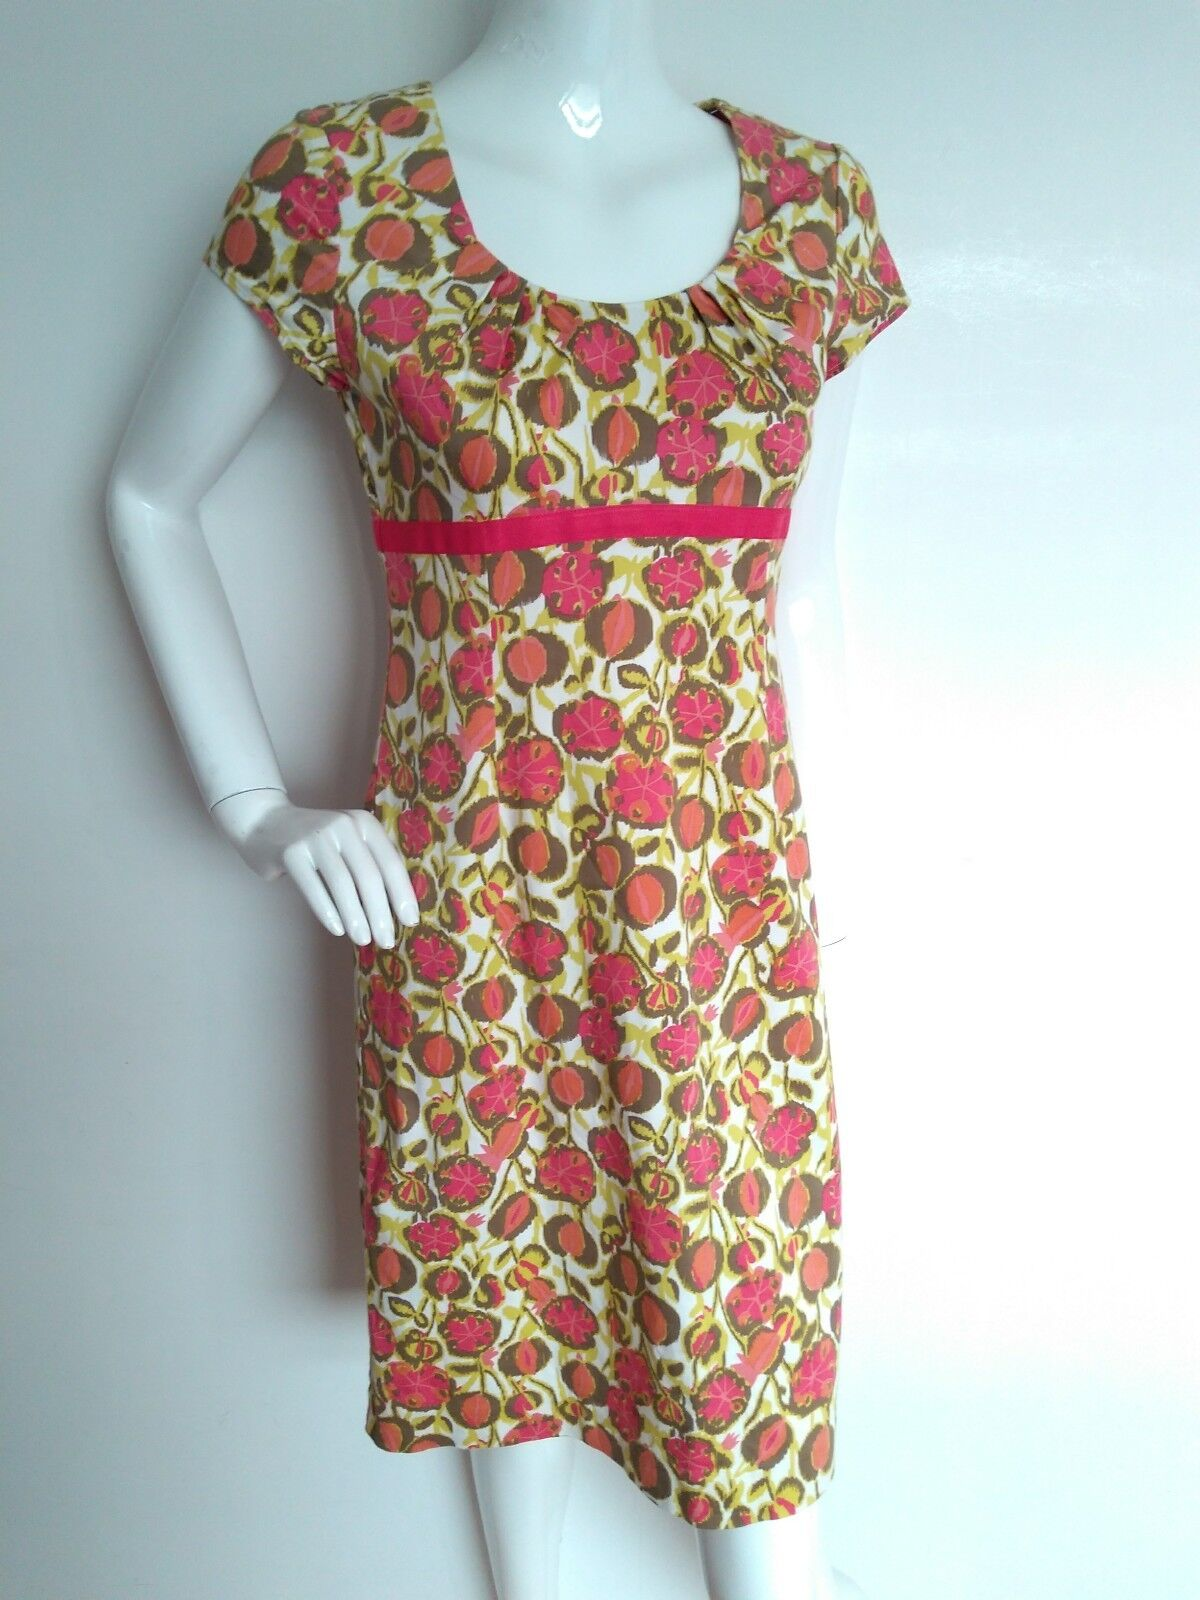 BODEN print cotton shift dress size 12L --USED ONCE-- short sleeve knee length